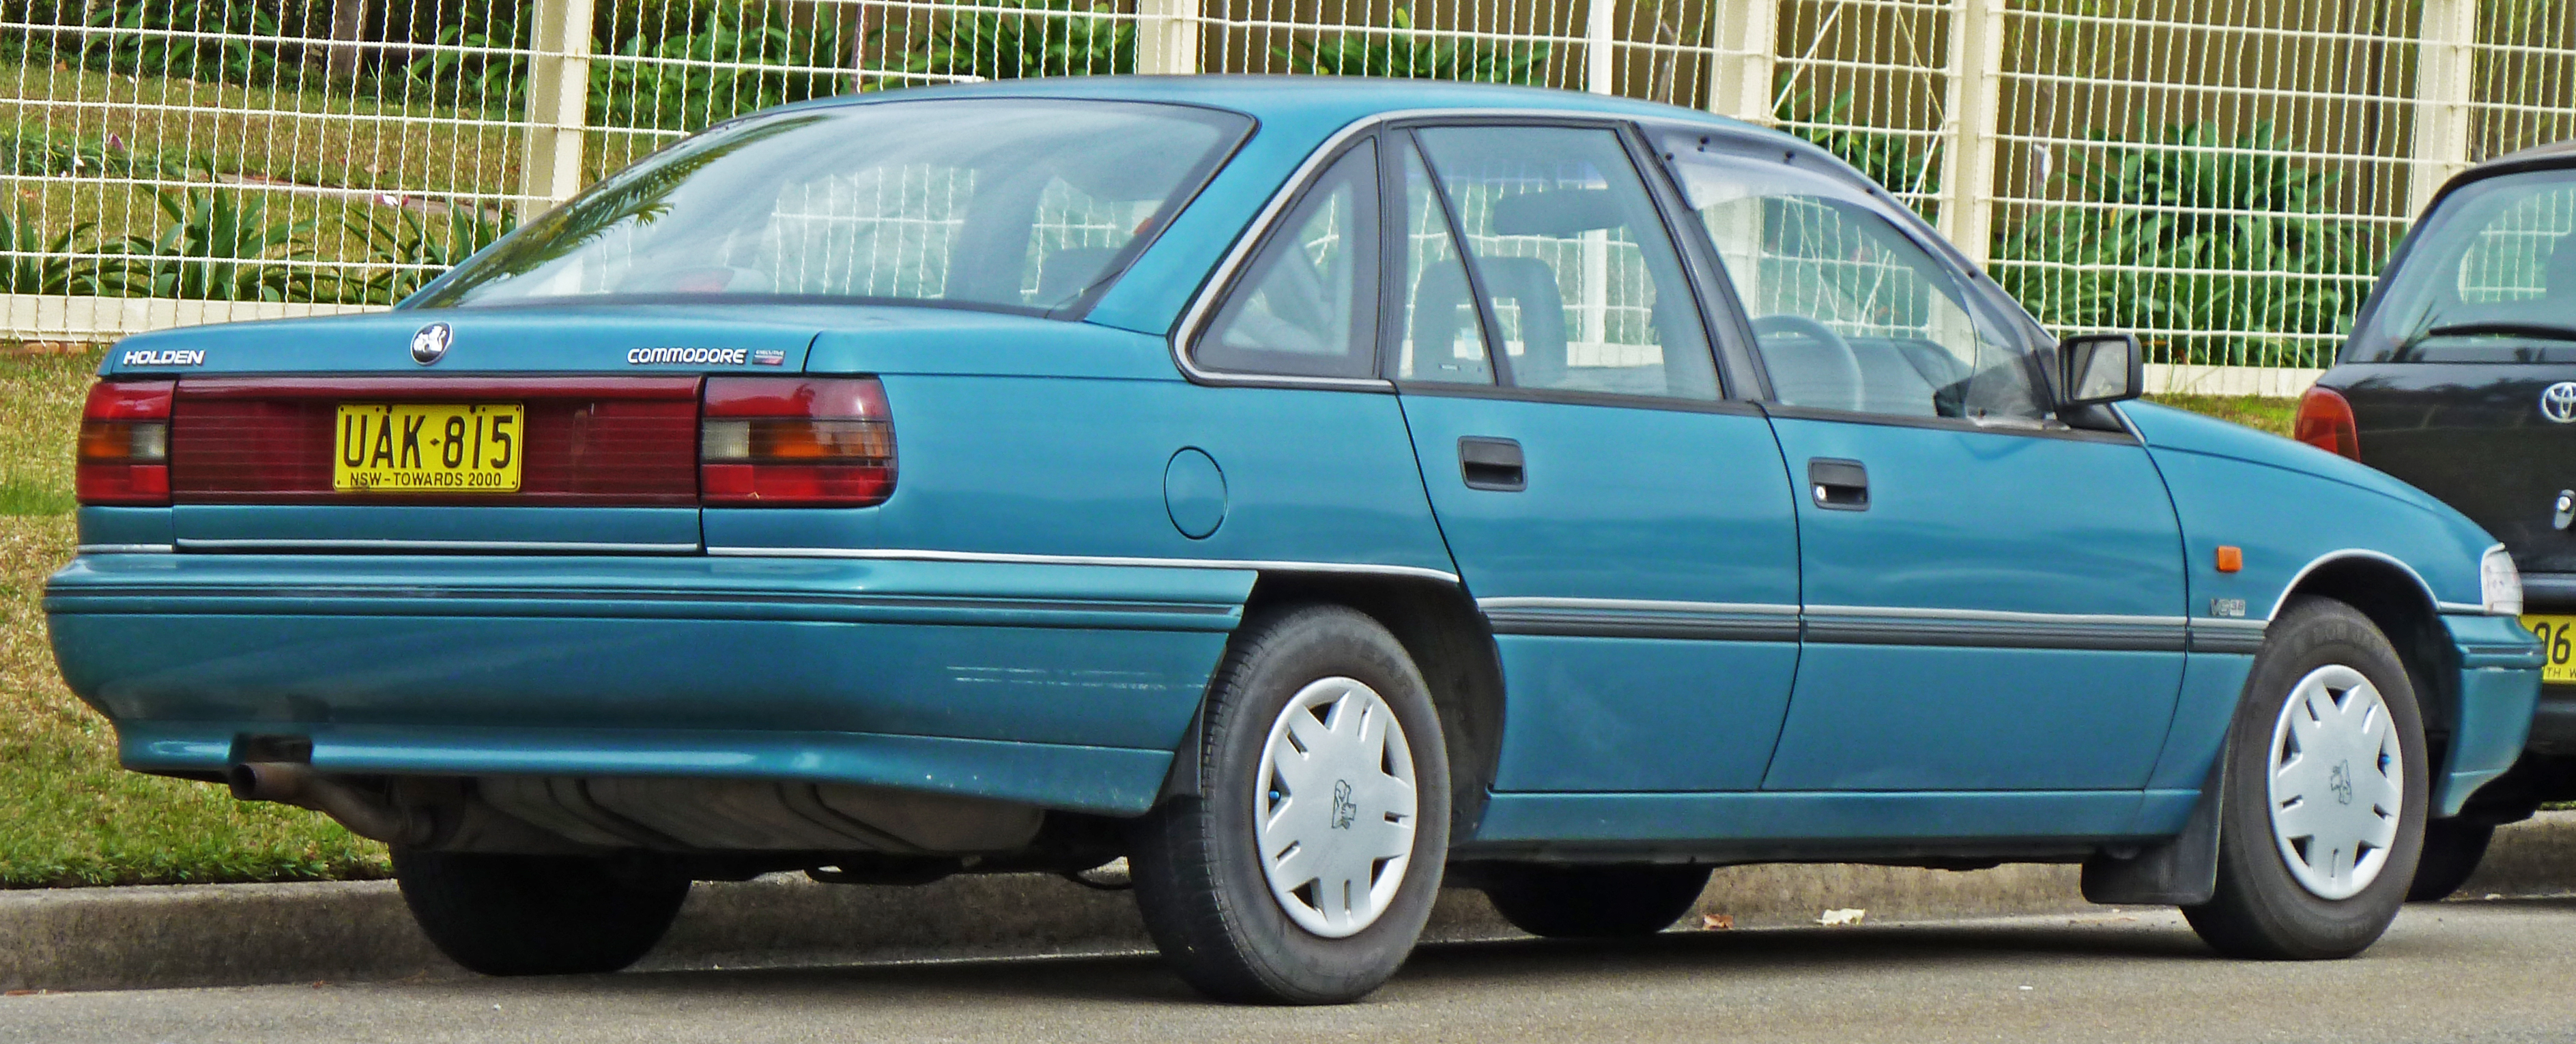 1992 Holden Commodore #5